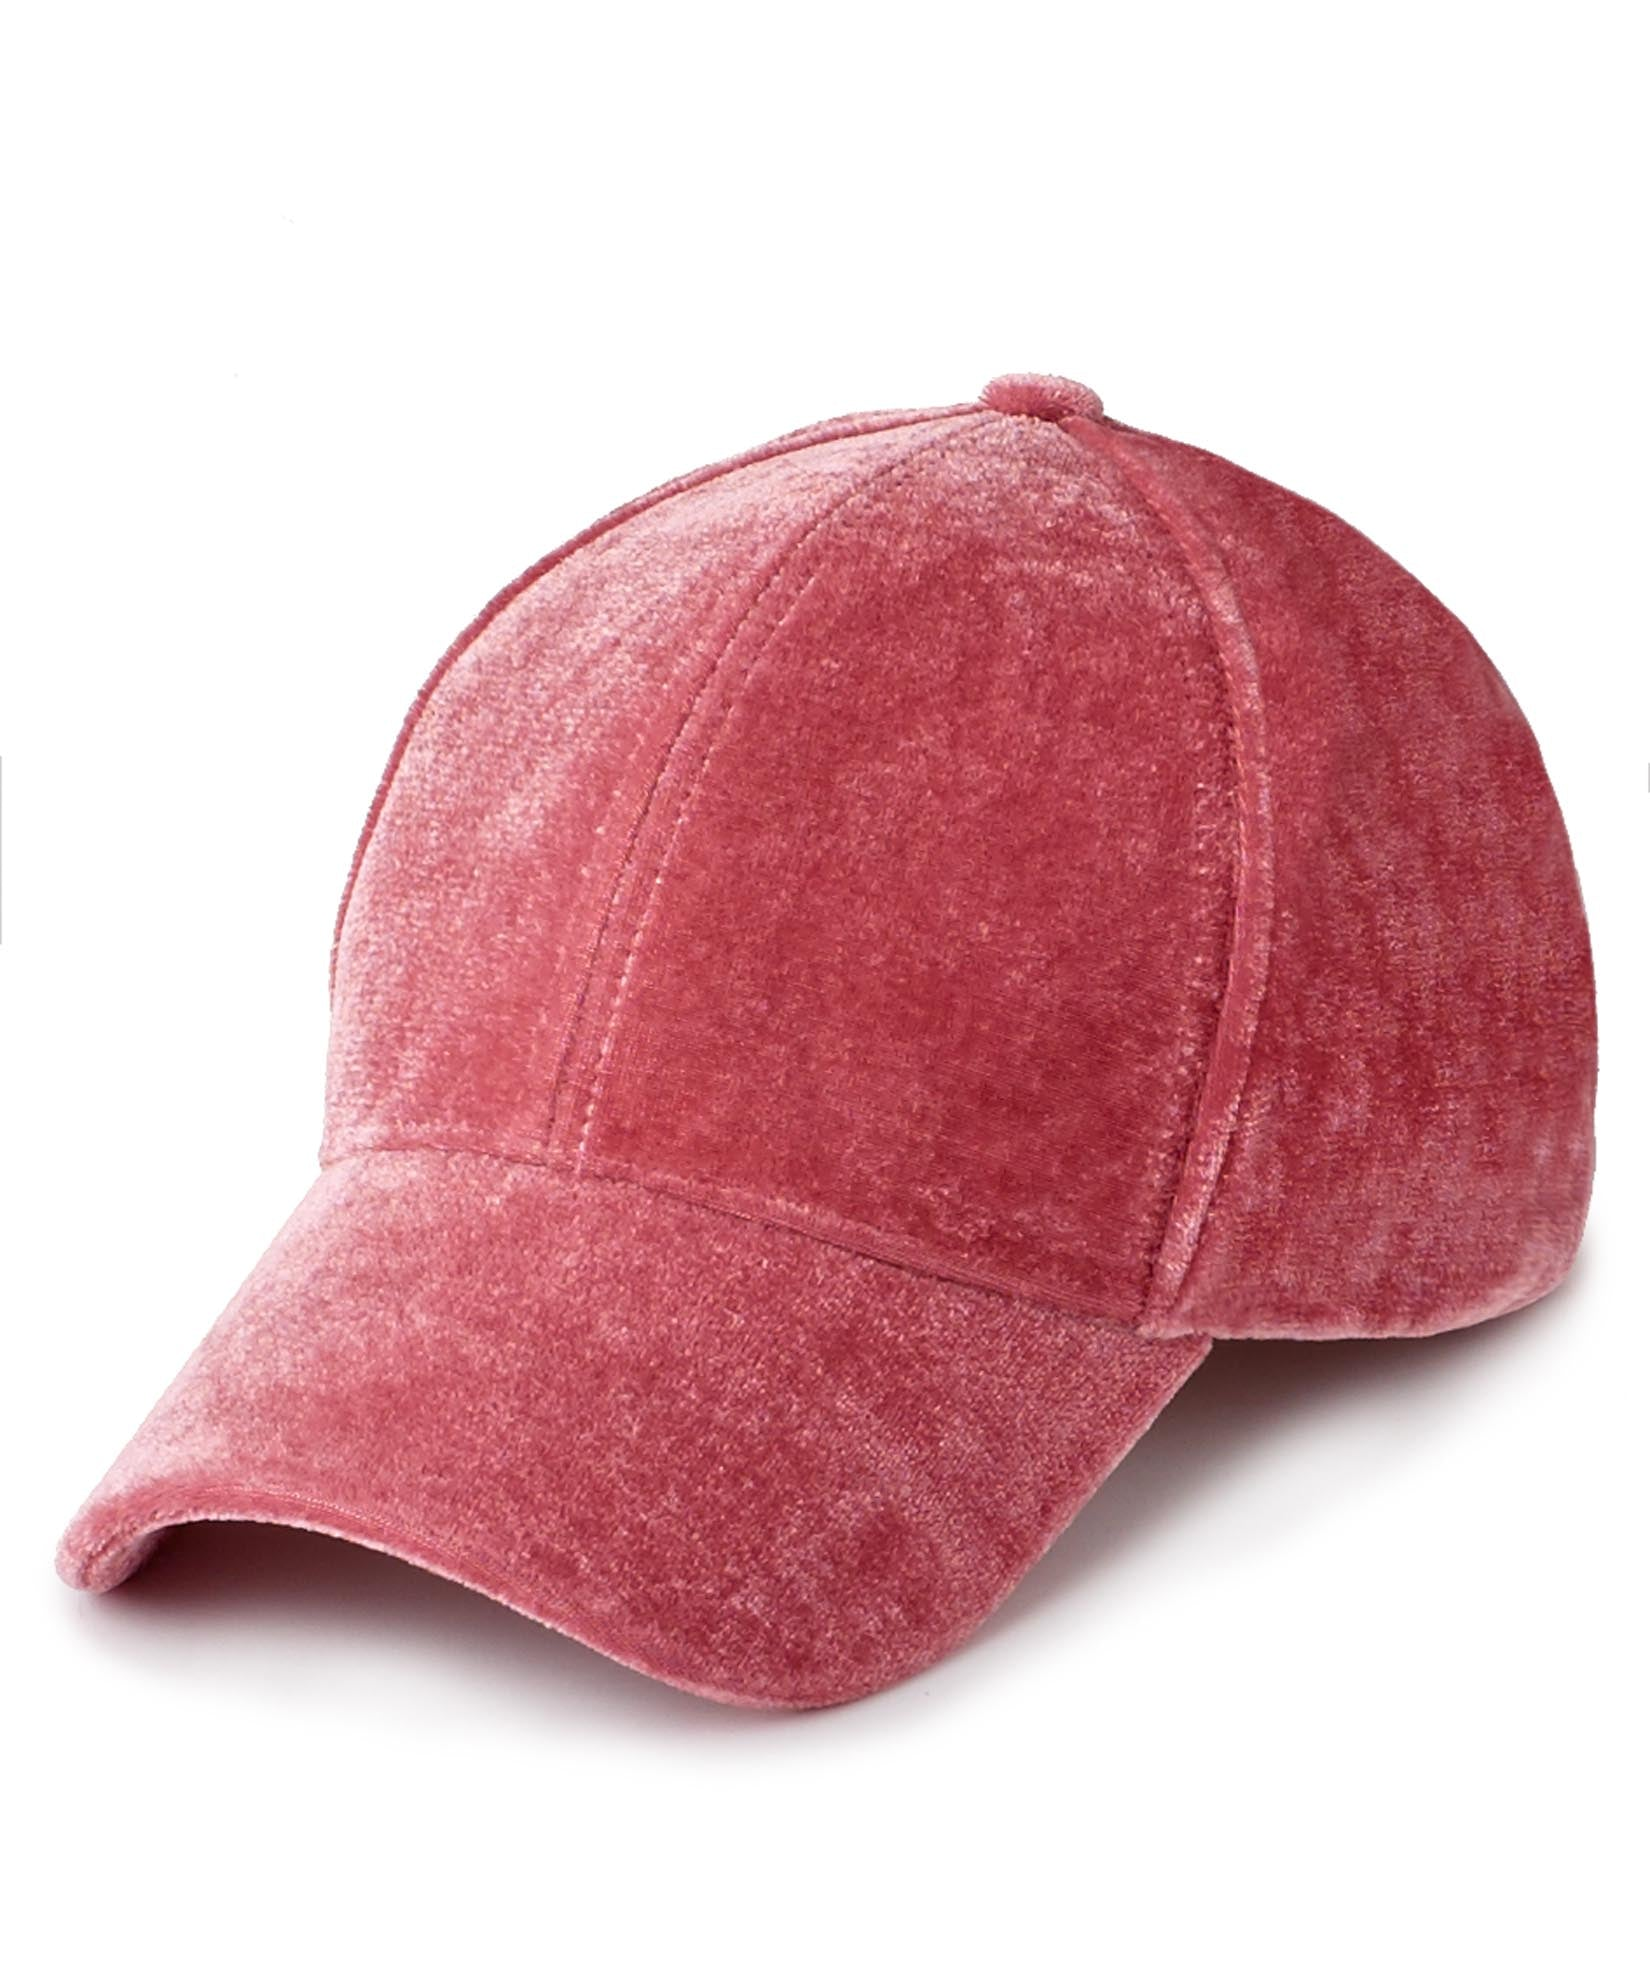 Deep Blush - Velvet Baseball Cap